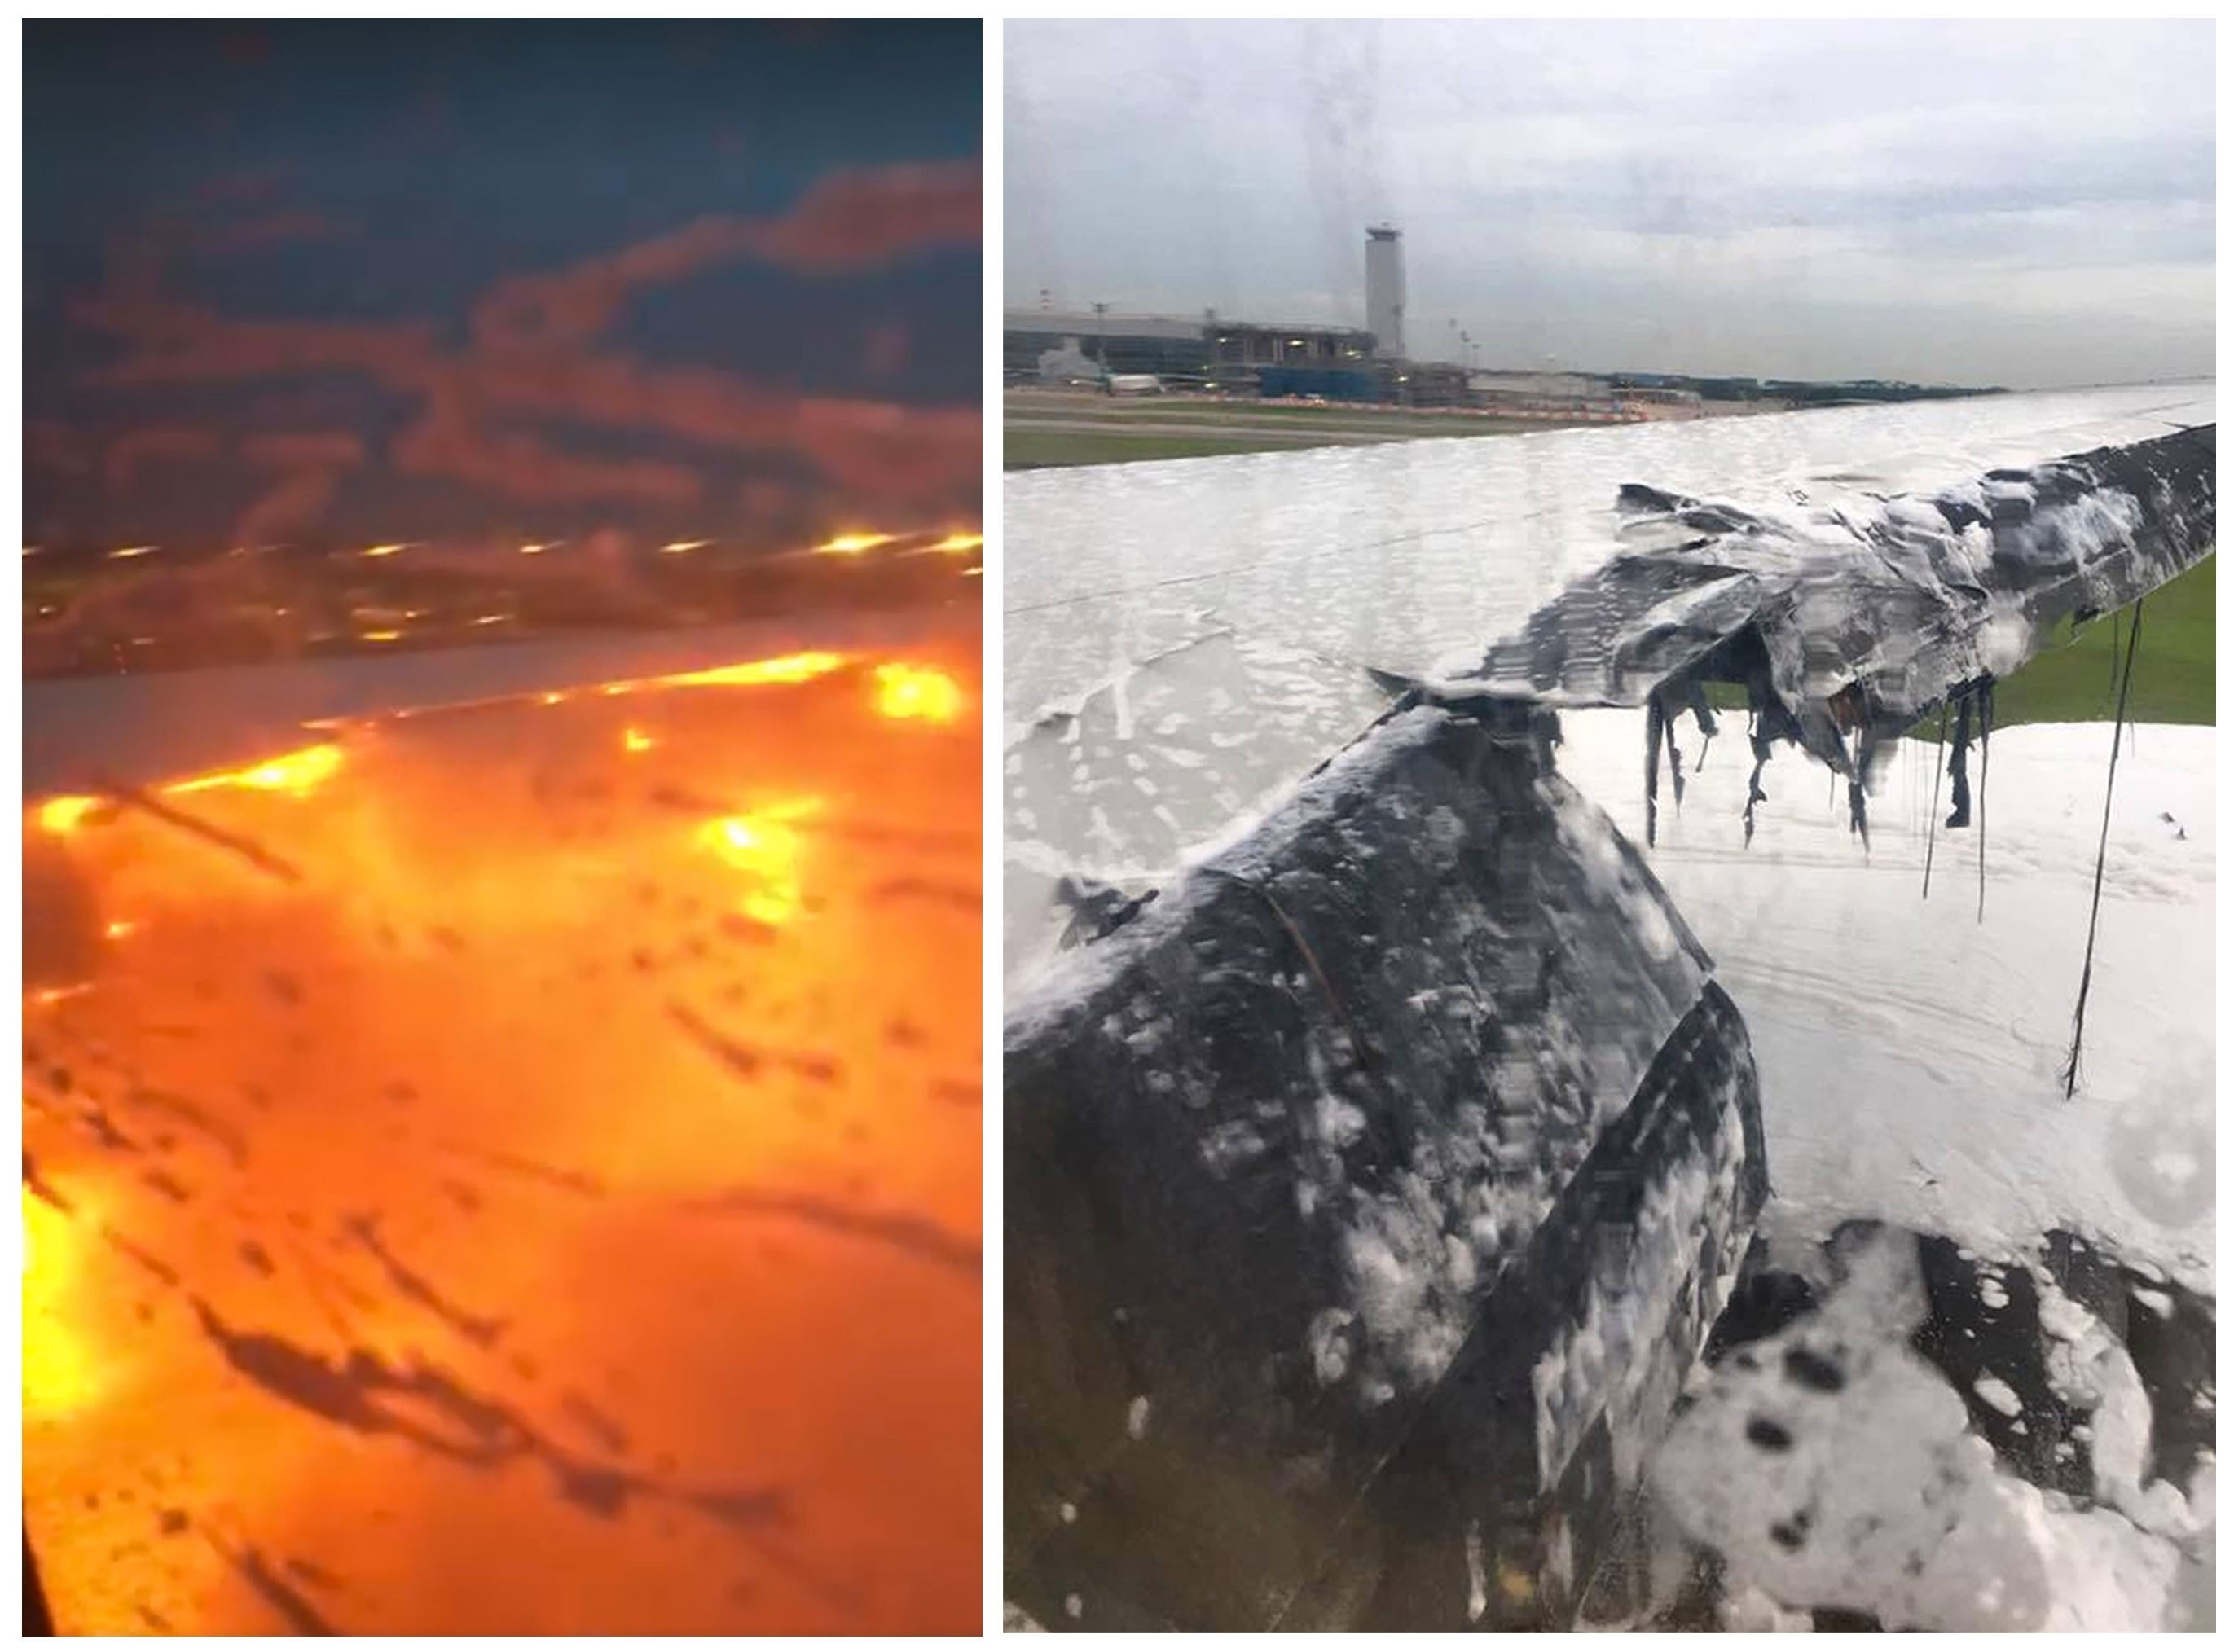 Images of the wing on fire (left) and after (right)